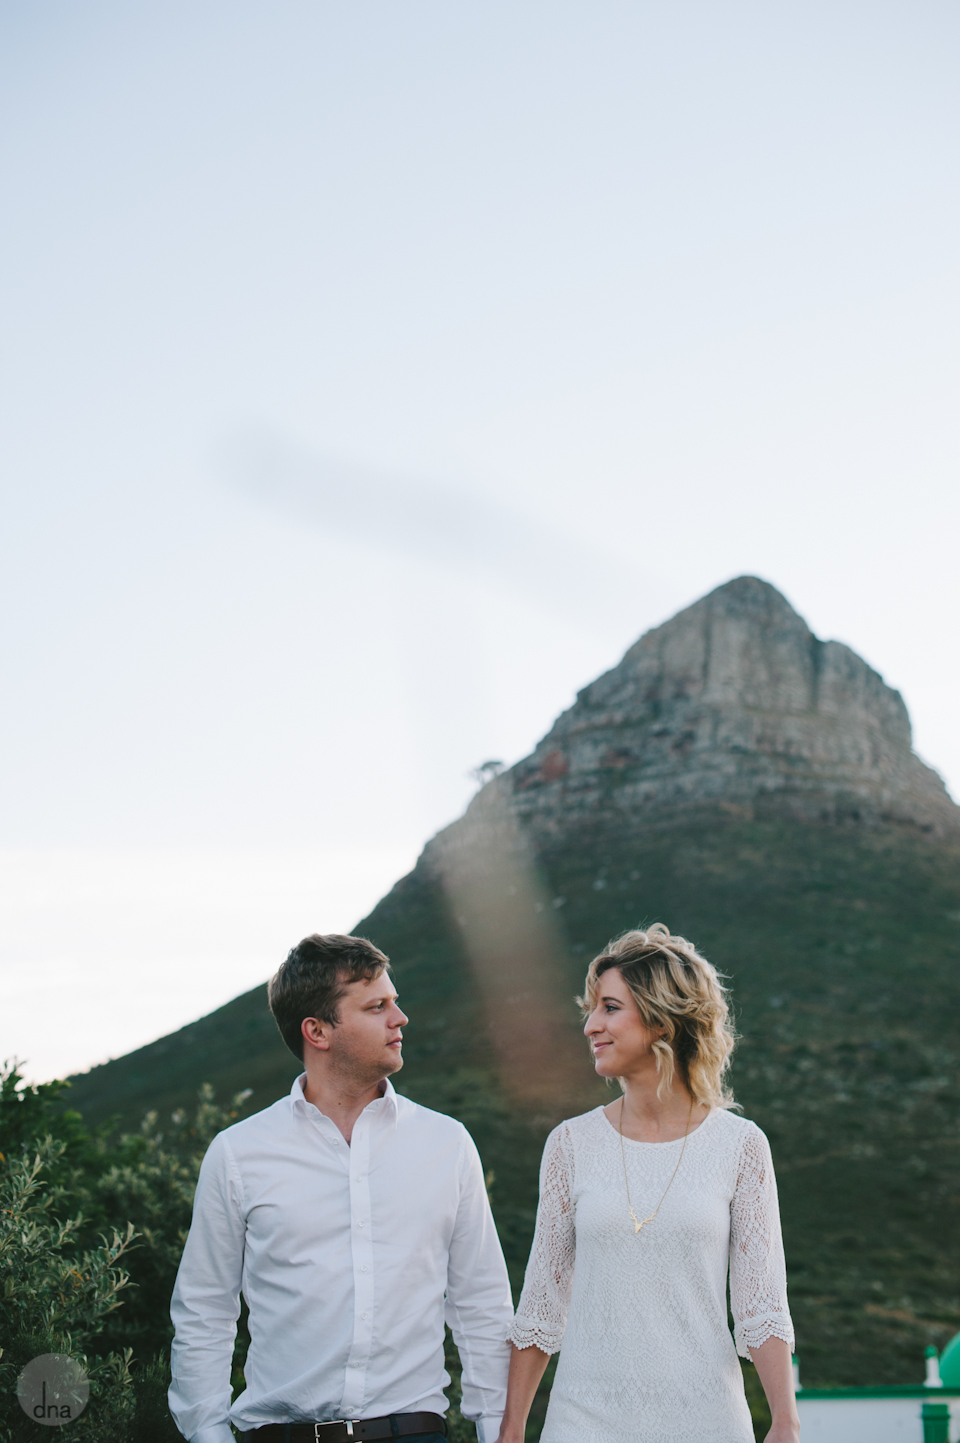 Chrisli and Matt engagement shoot City and Signal Hill Cape Town South Africa shot by dna photographers 145.jpg